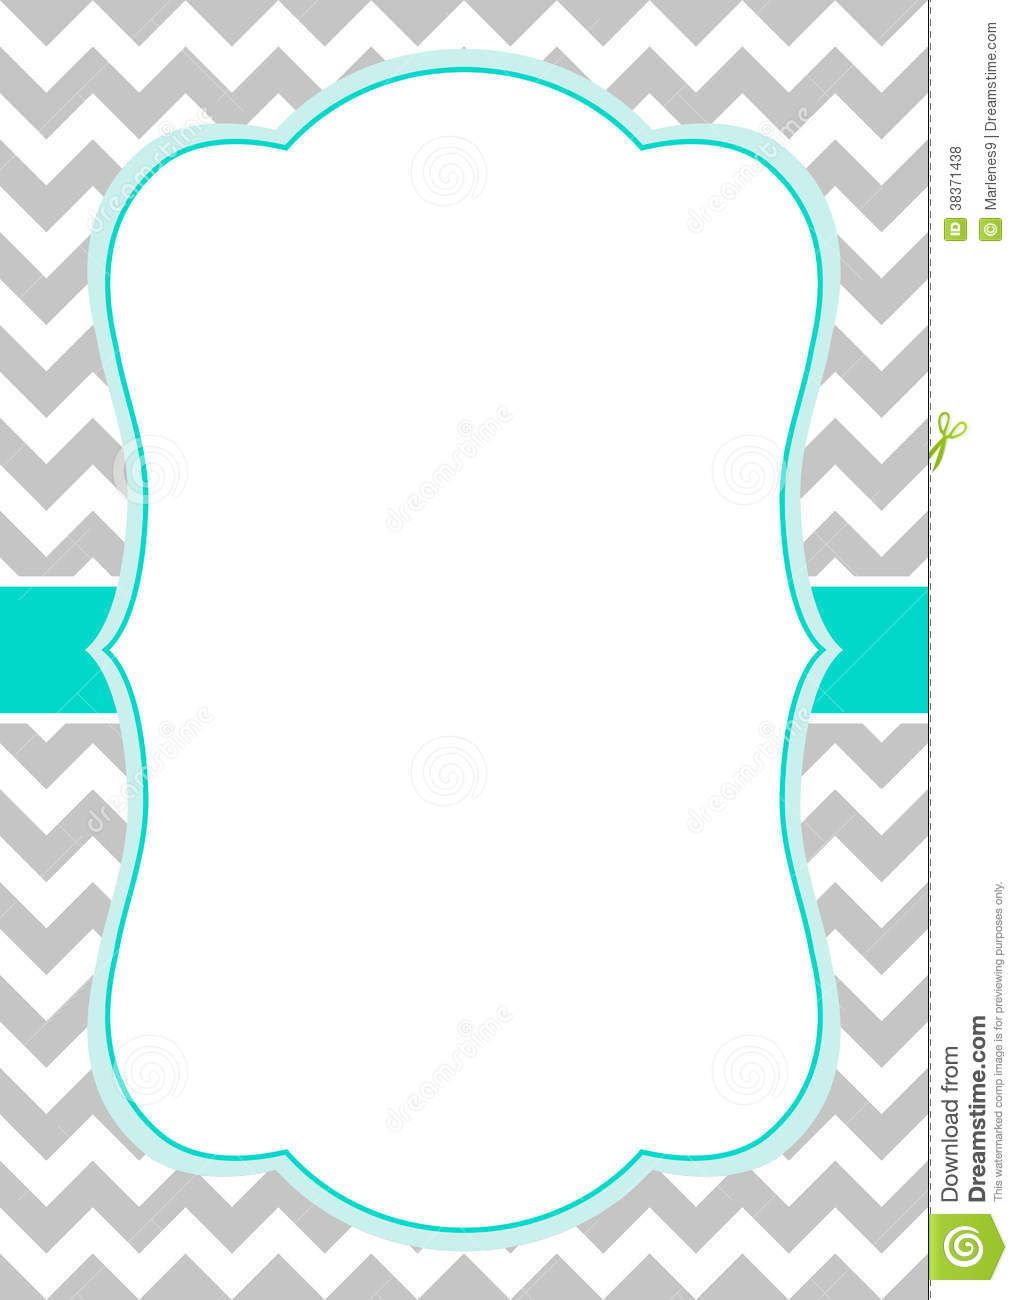 birthday border templates for word ; aa2beffc756c3508a90cff56652d0b32